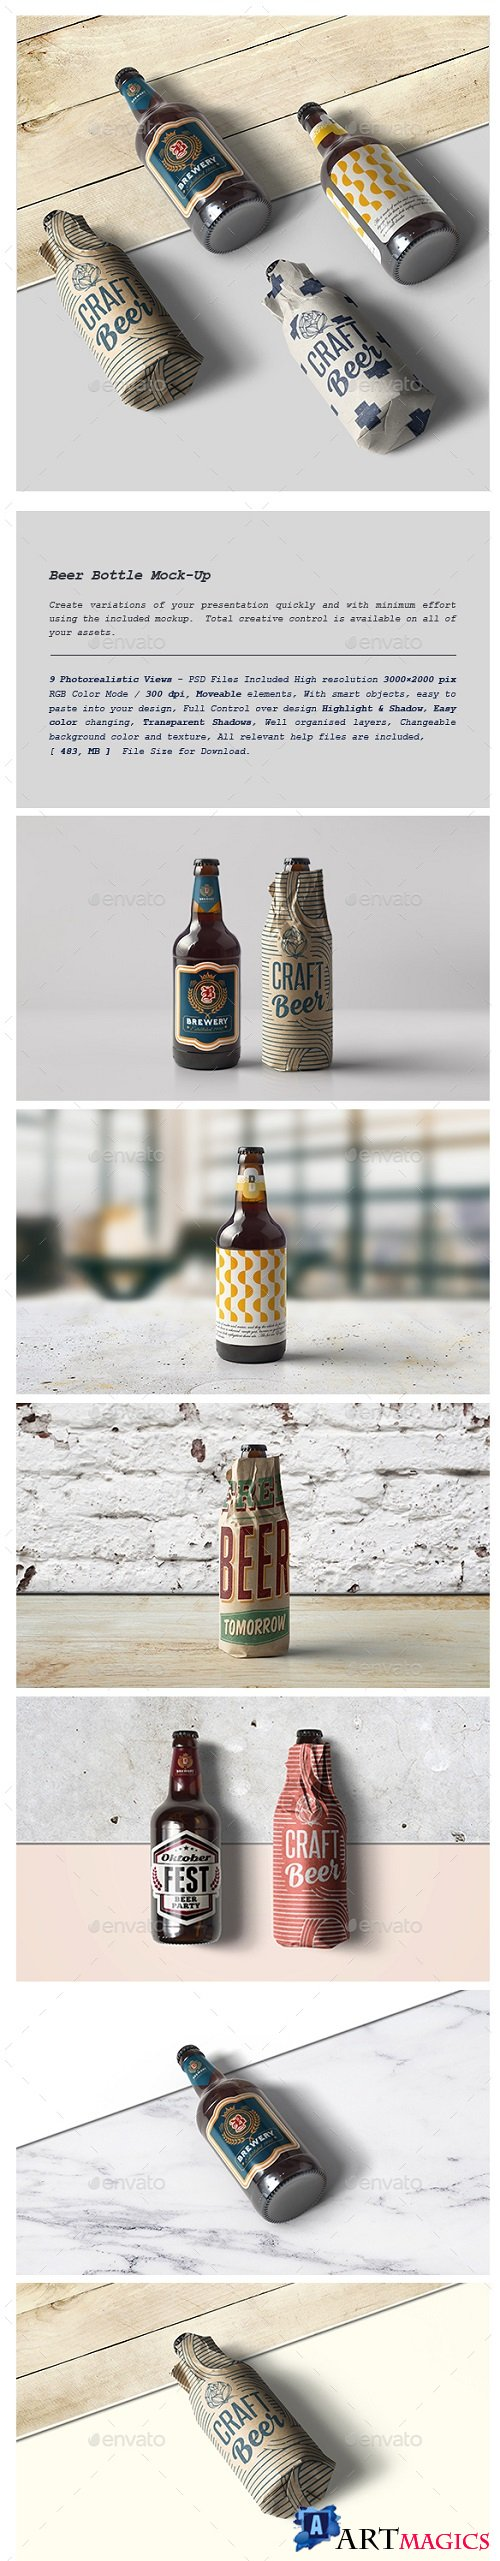 Beer Bottle Mock-Up 21398869